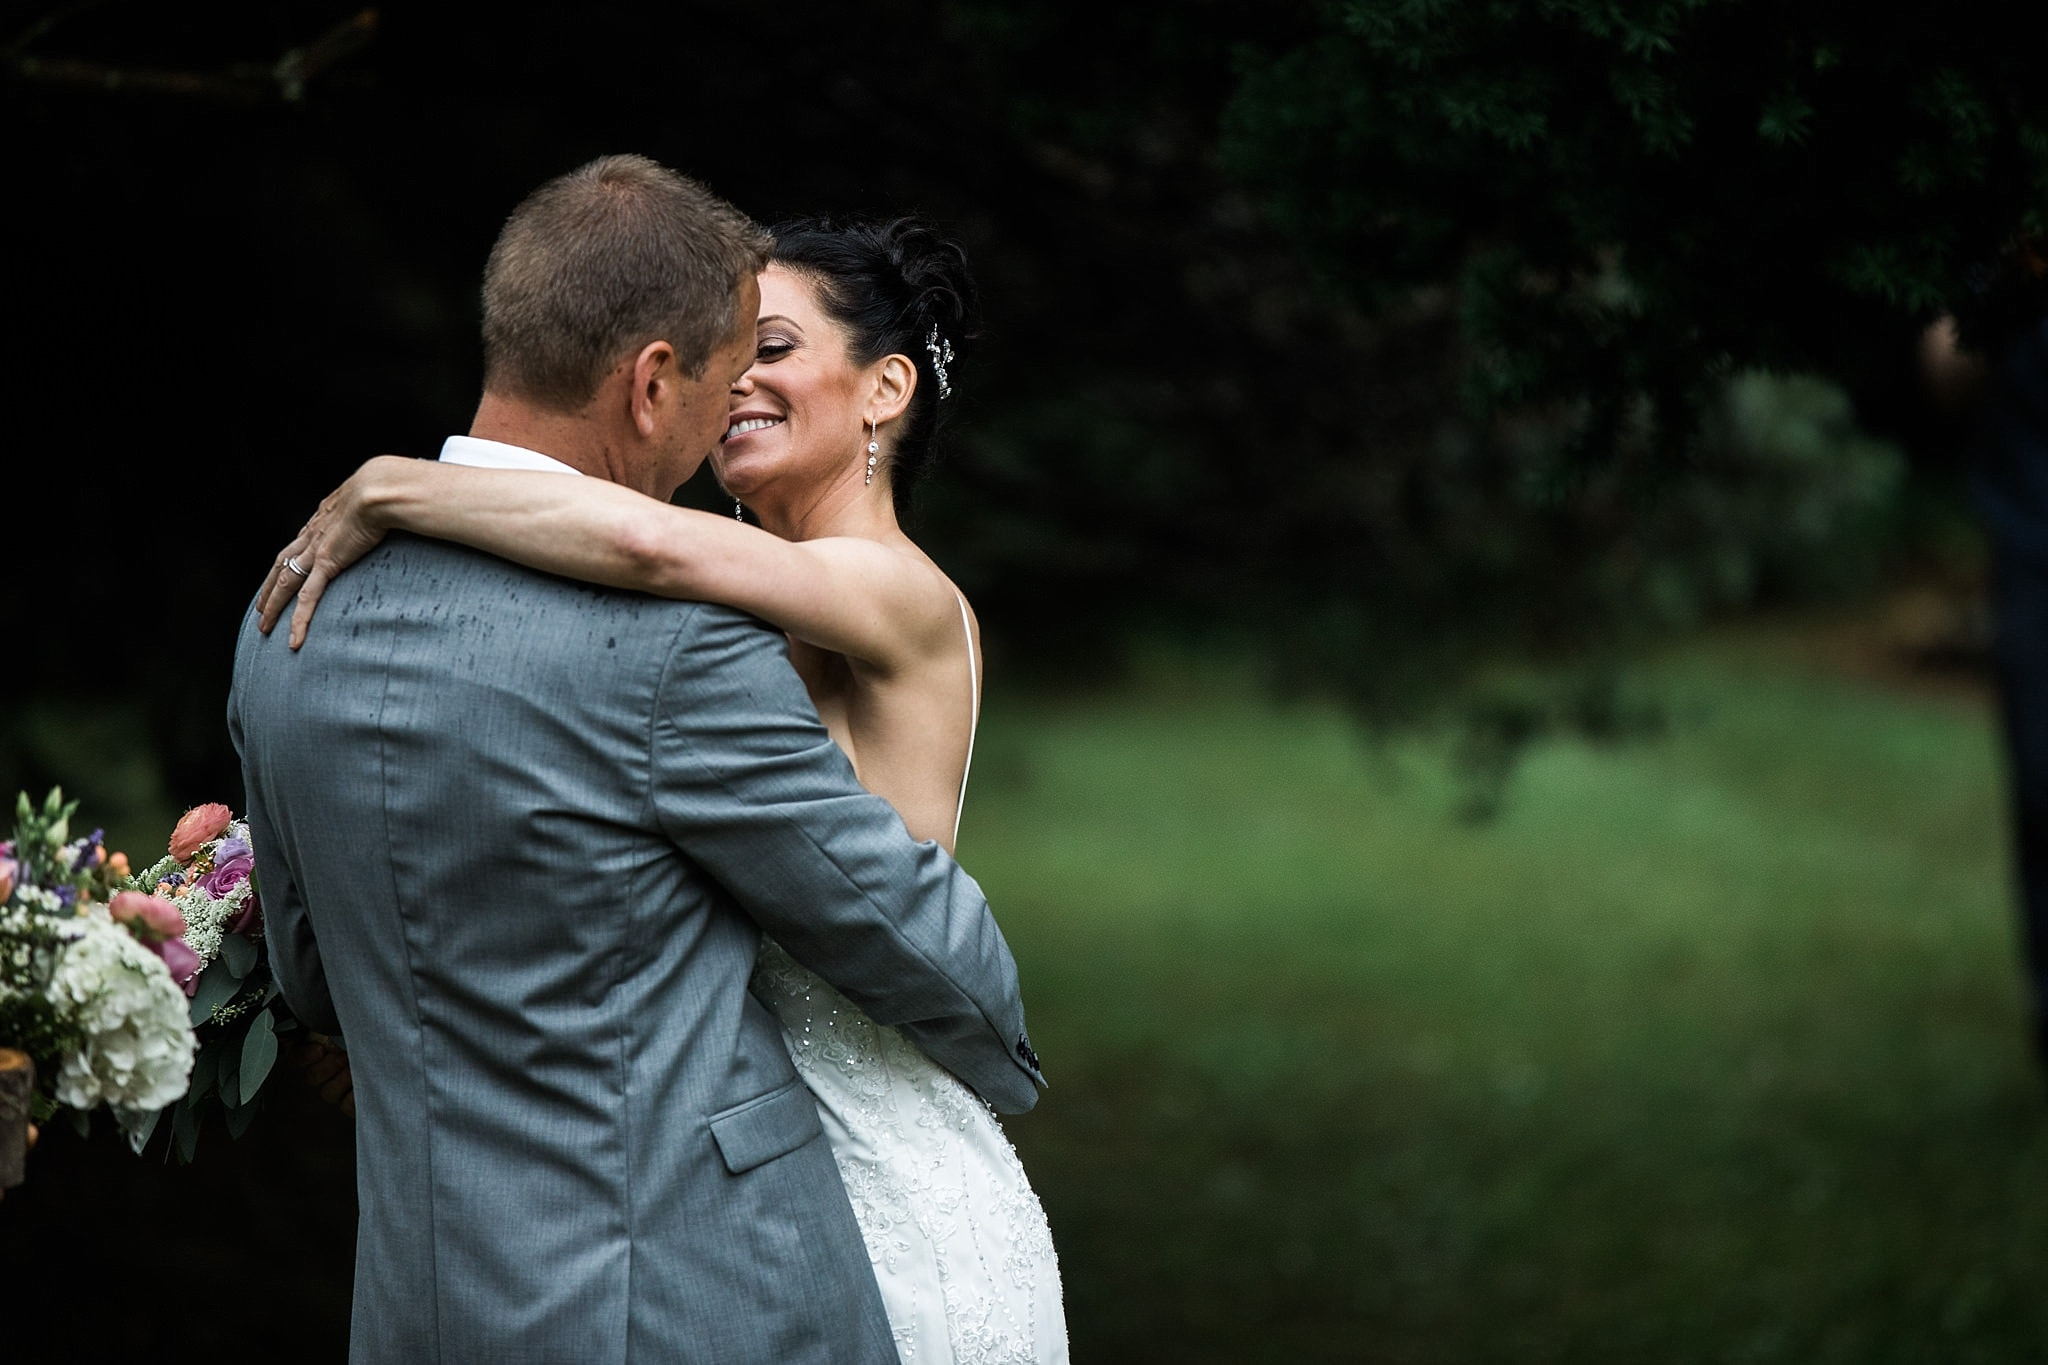 Farm Wedding Barn Wedding Backyard Wedding Intimate Wedding DIY Wedding michigan wedding photographer ME+HIM Photography